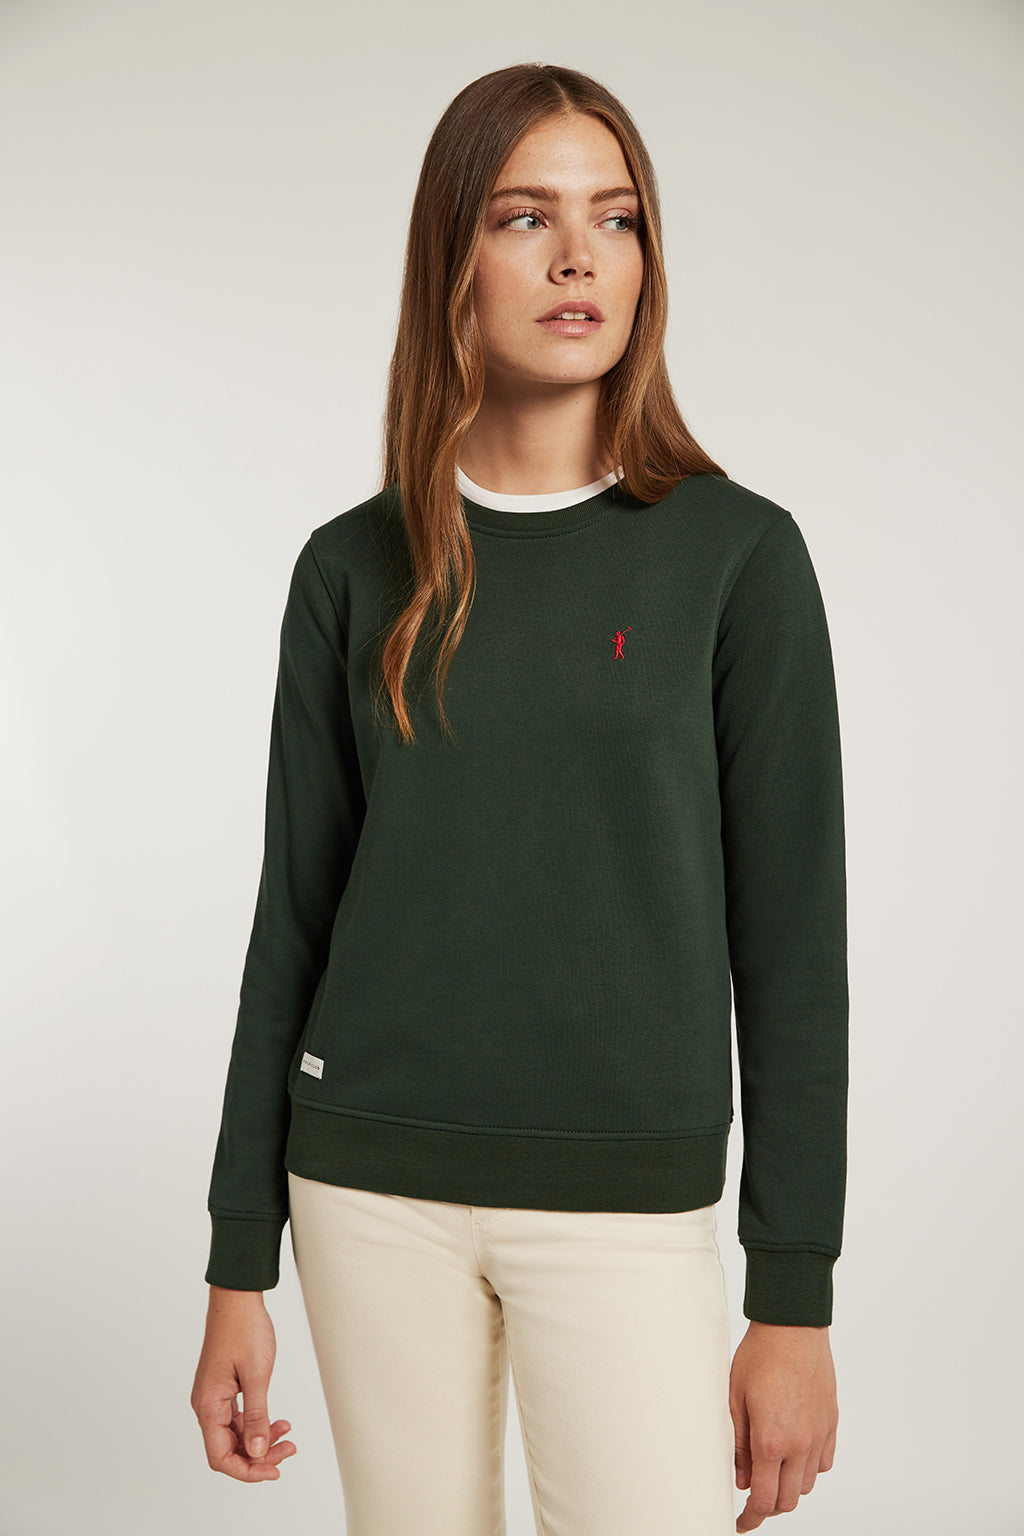 Bottle green round-neck sweatshirt made from organic cotton